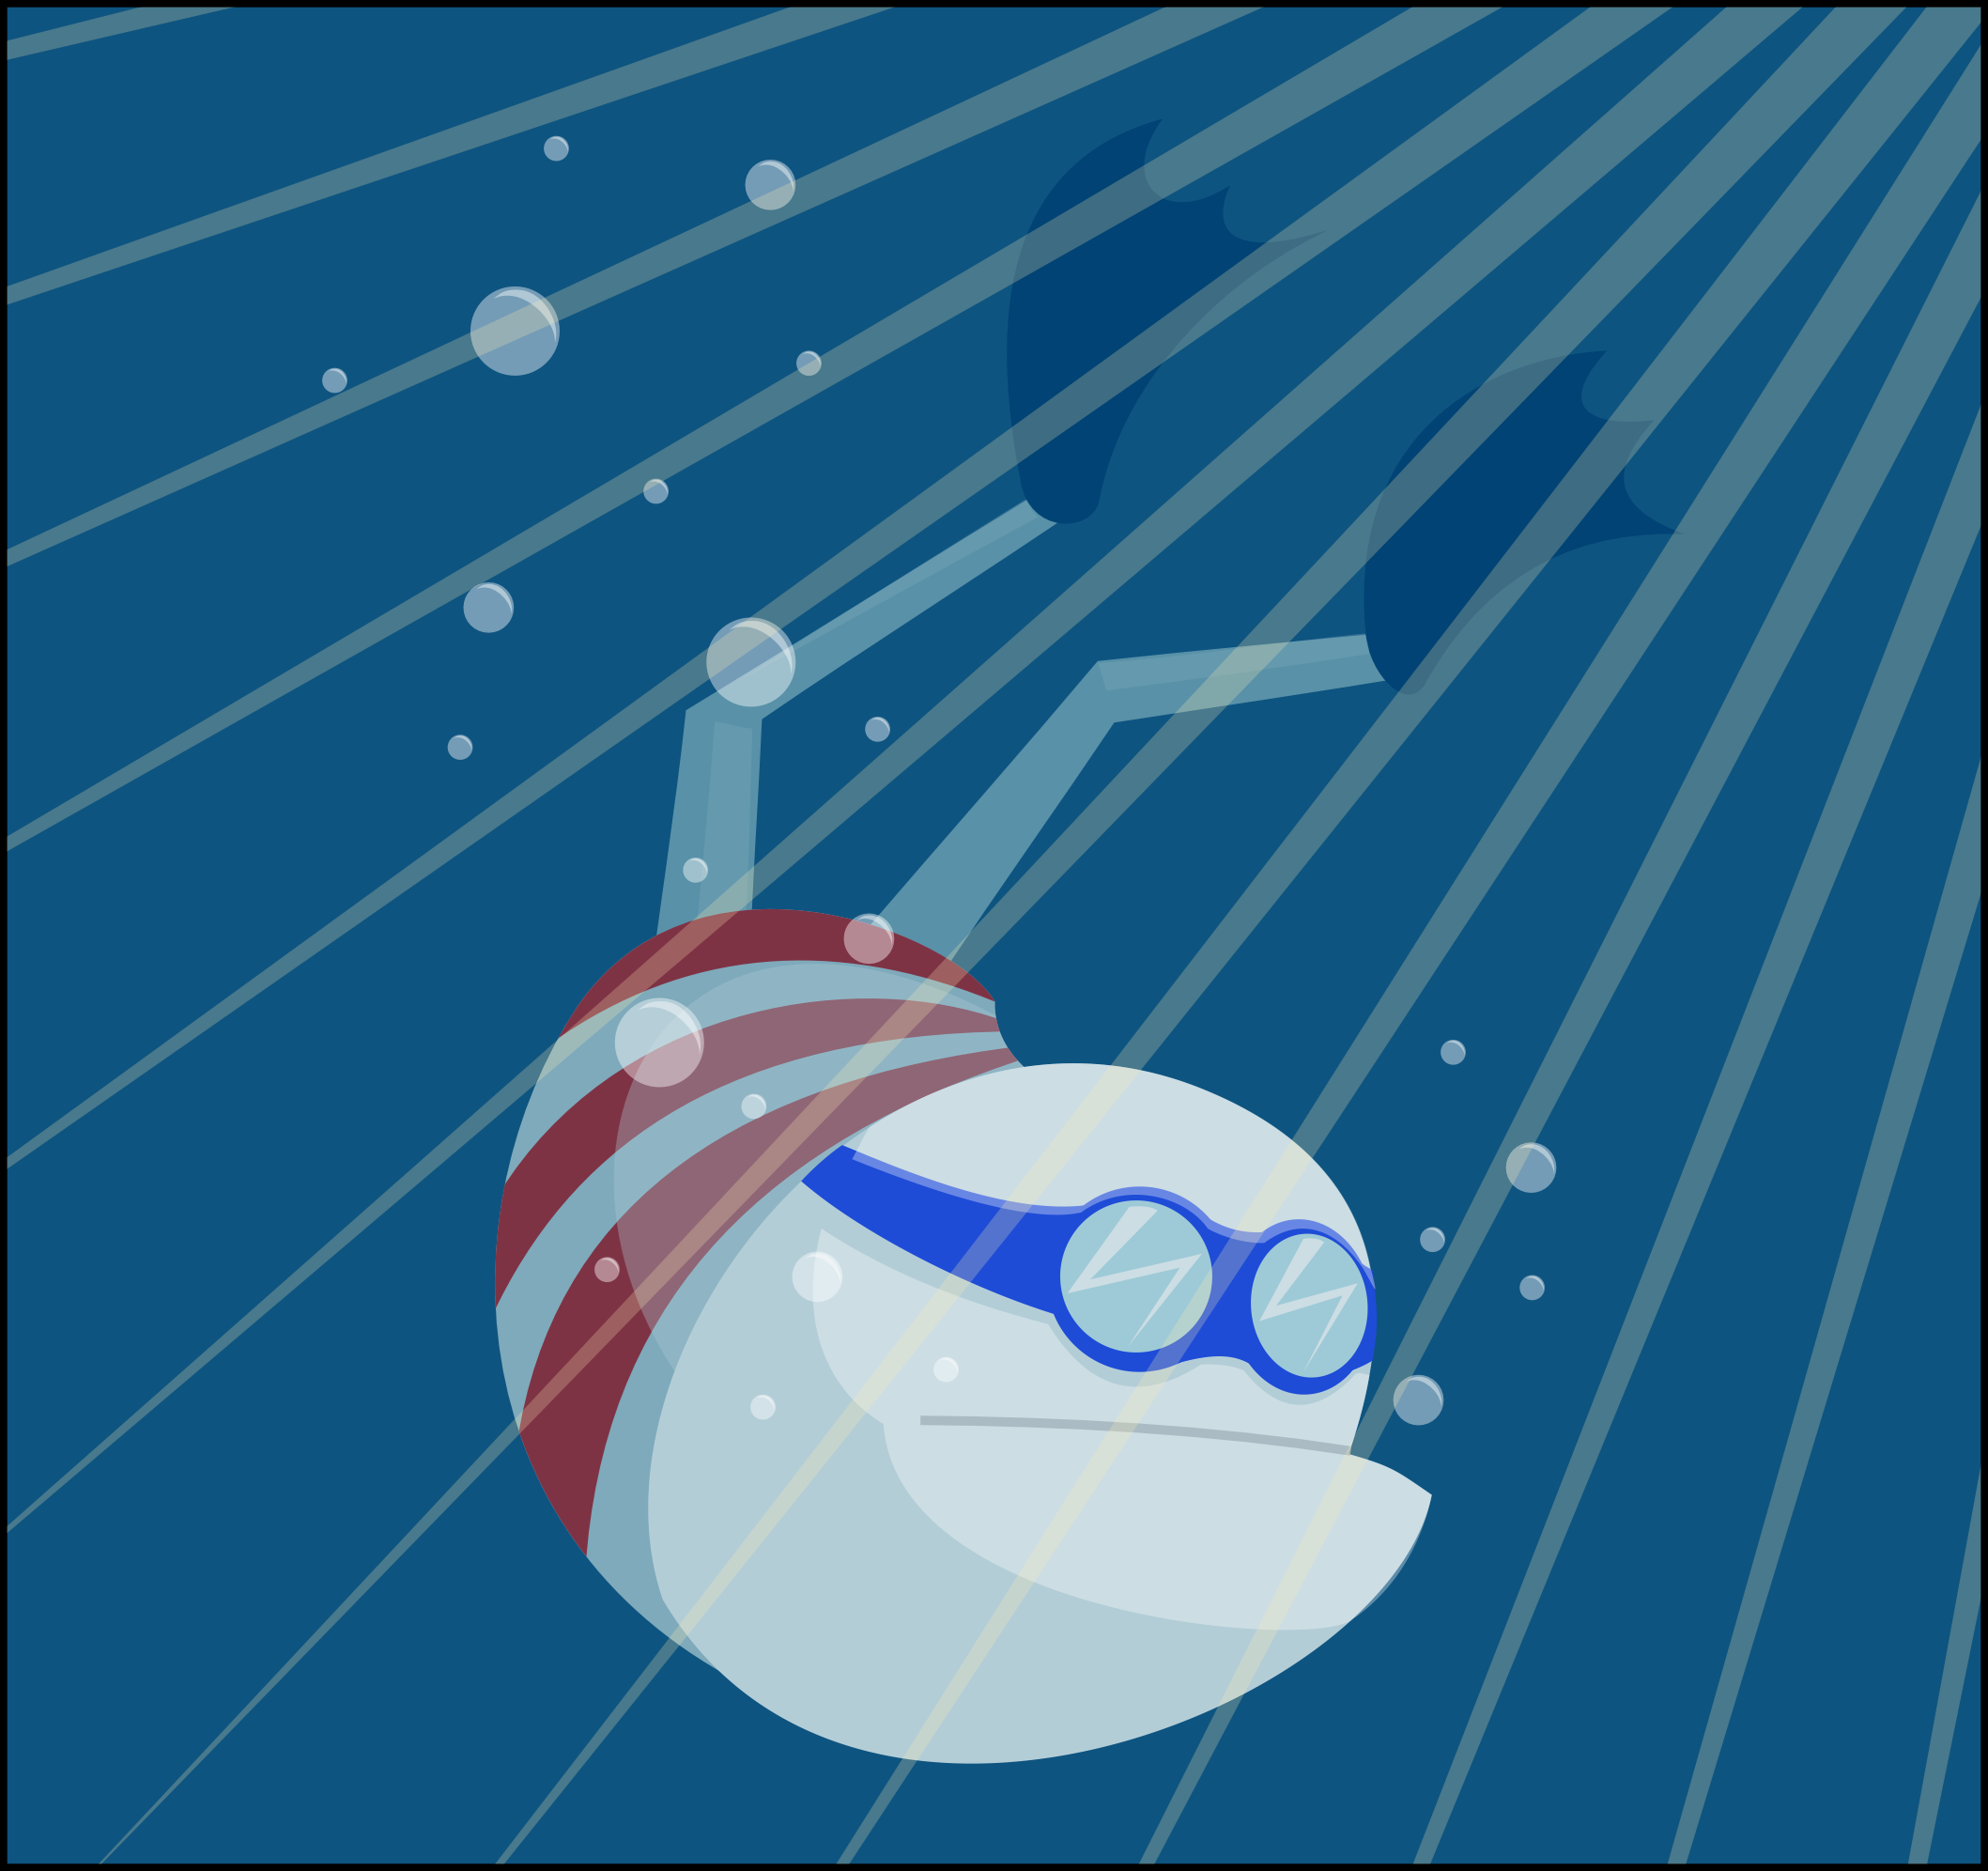 Homestar Runner The Swimmer By Iamthedragon